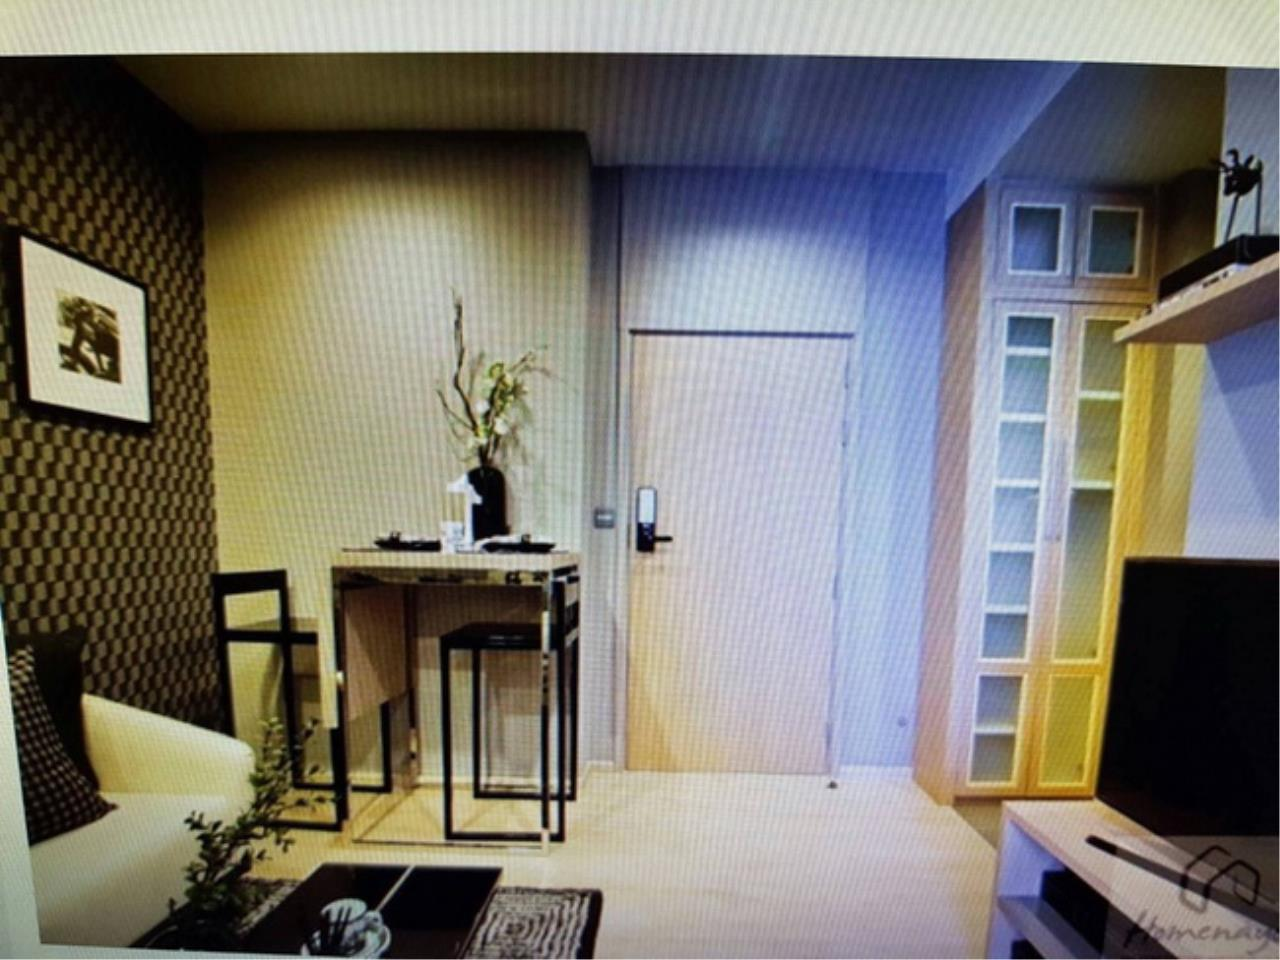 38014 - Condo M Thonglor Sukhumvit Road. 29.35 sq.m.